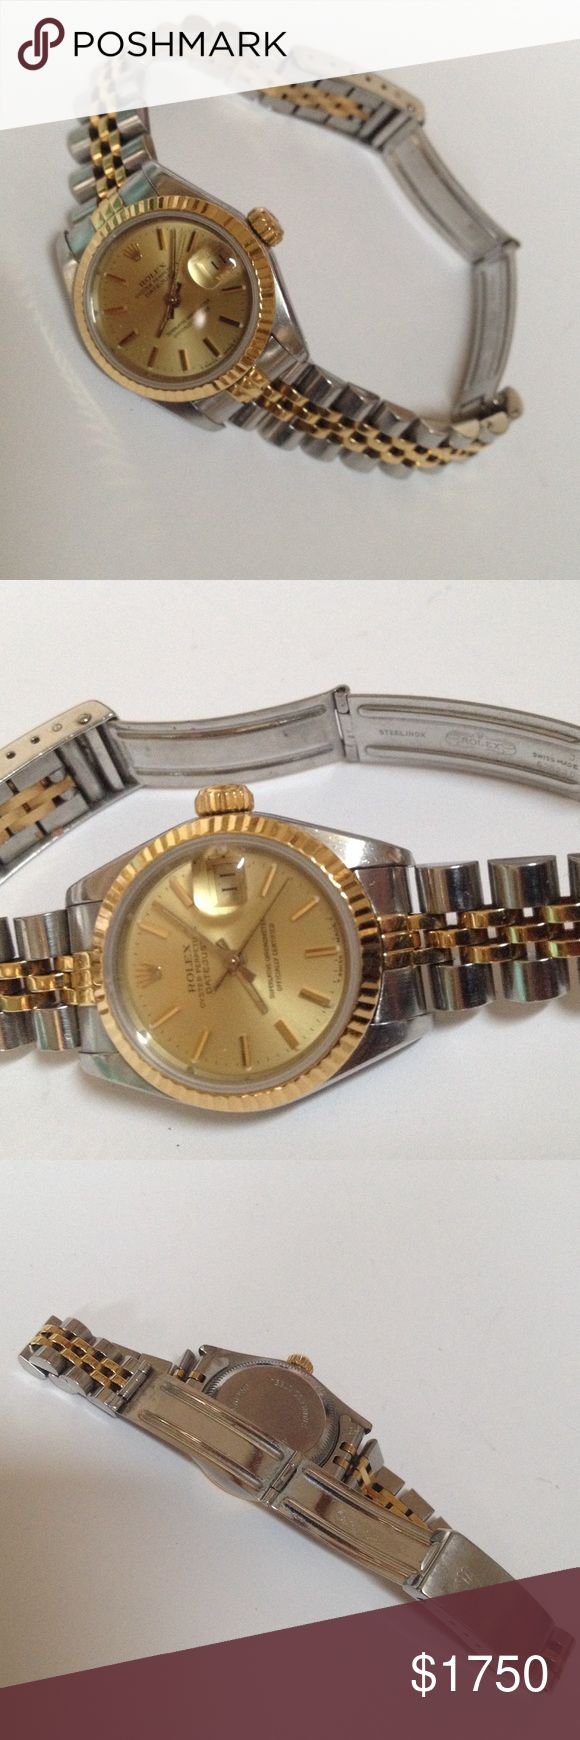 Authentic ROLEX Datejust Oyster Perpetual Watch Loved and wore it forever, time to let it go. Authentic ROLEX Woman's Datejust Oyster Perpetual Calendar Watch. 18K Yellow Gold and Stainless Steel Band. 18K Yellow Gold Bezel. Deployment style clasp. Pre loved, will show normal use and wear. Professionally maintained since the day I had it. Recently appraised for $3,200. PRICE IS FIRM, No Trades. Accessories Watches